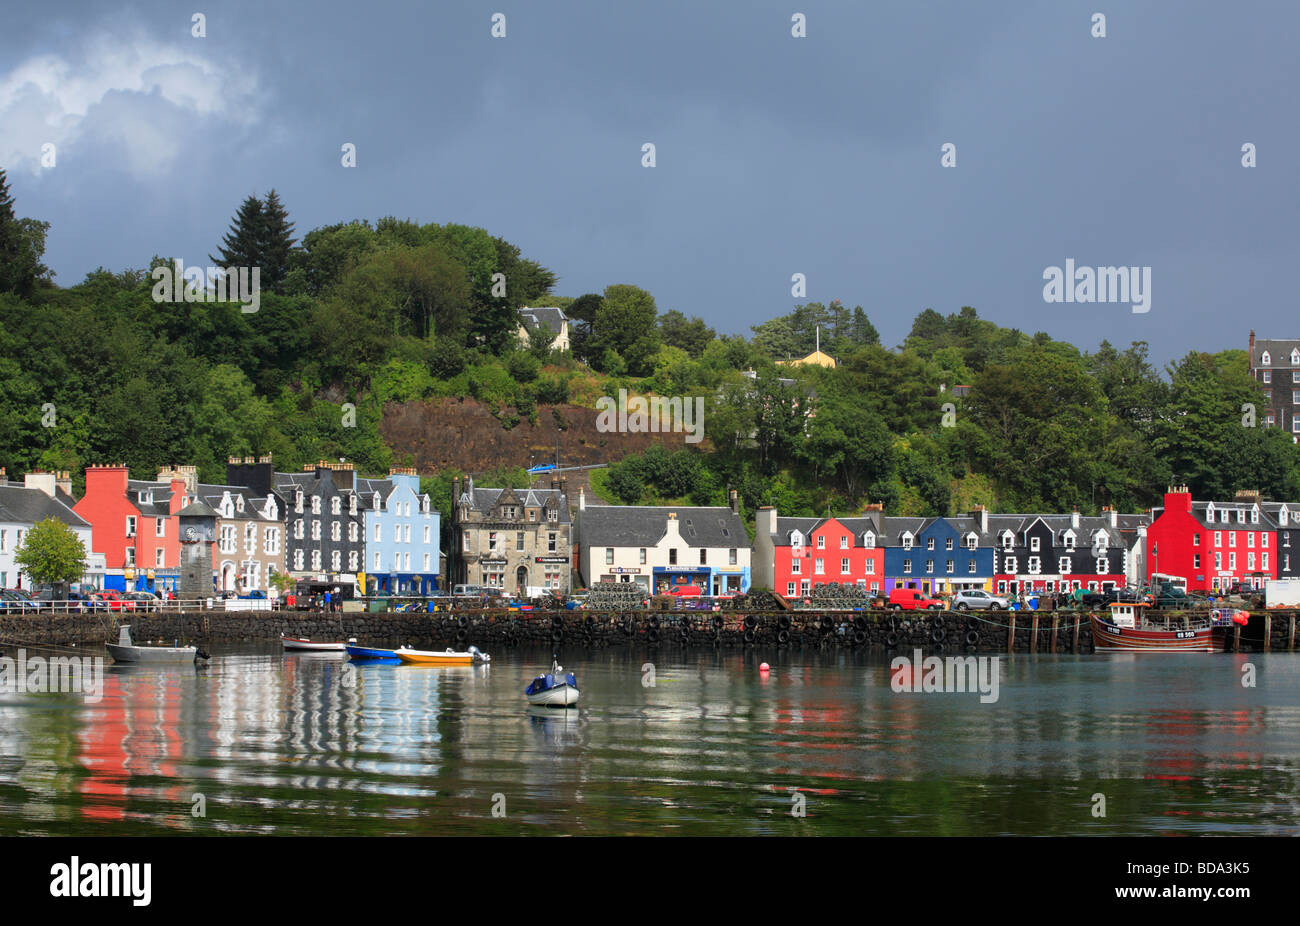 Tobermory Harbour on the Isle of Mull. - Stock Image